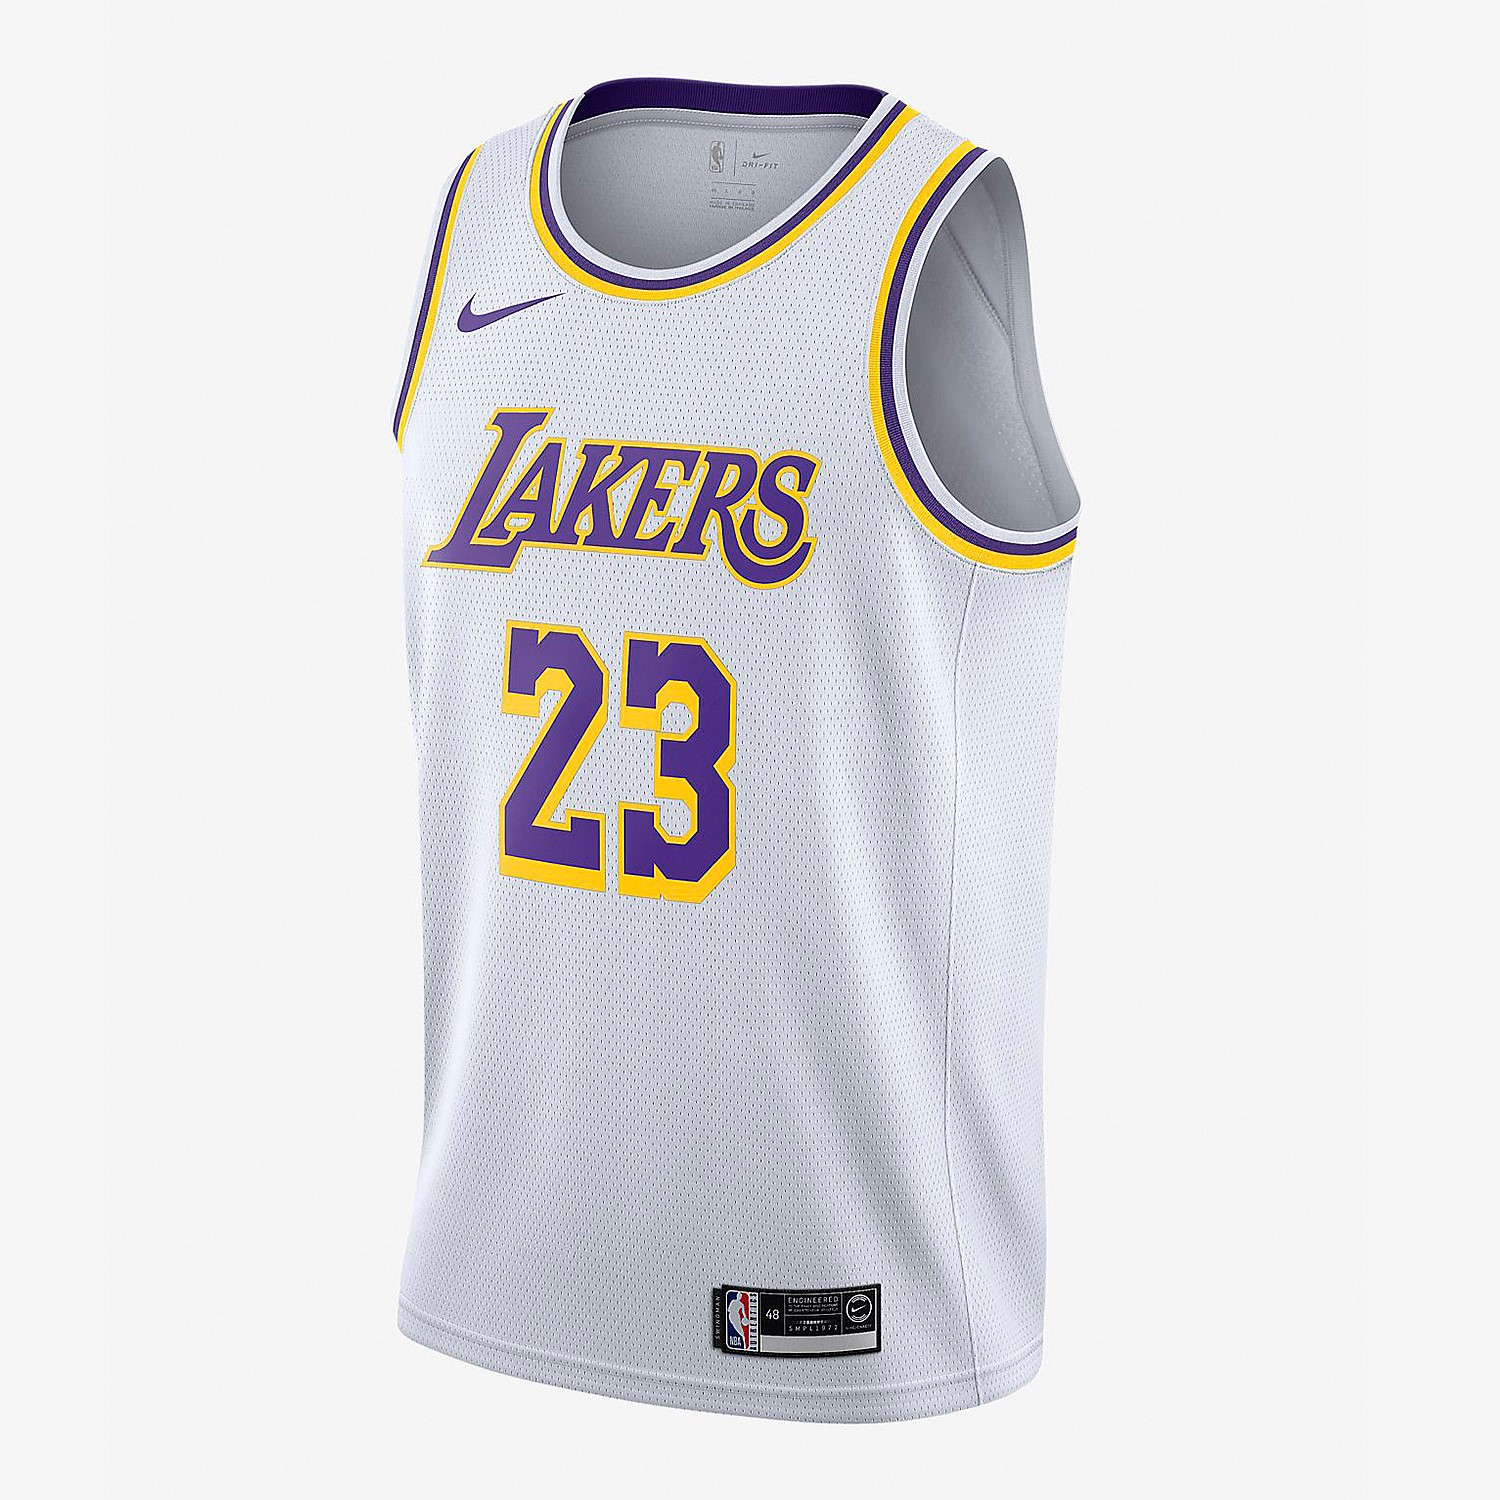 NBA | NBA Supporter Gear and